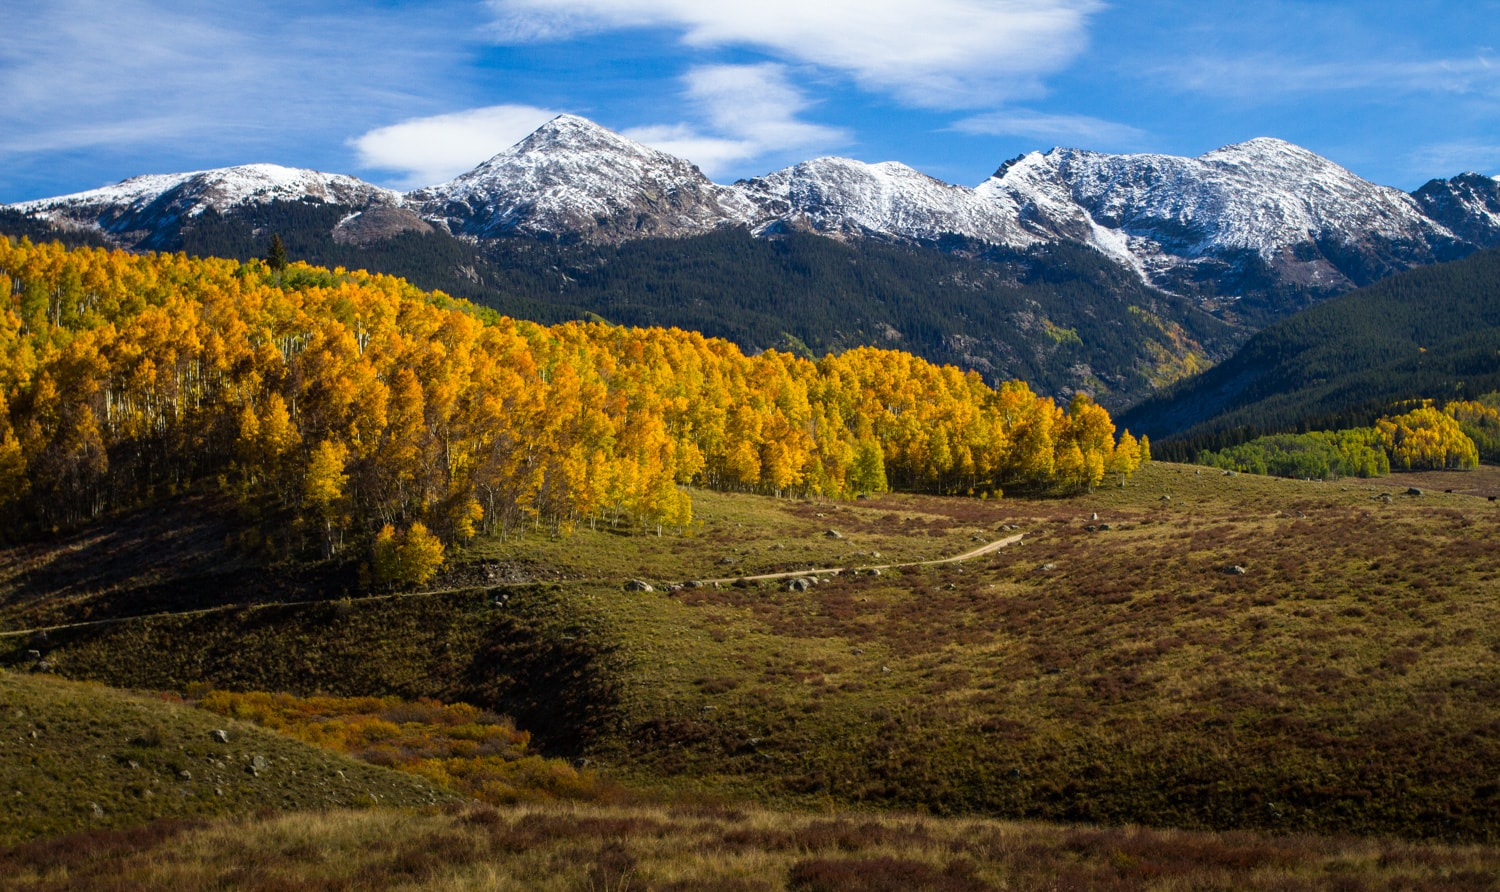 Lime Park: Experience the best fall colors in Colorado with this detailed road trip itinerary